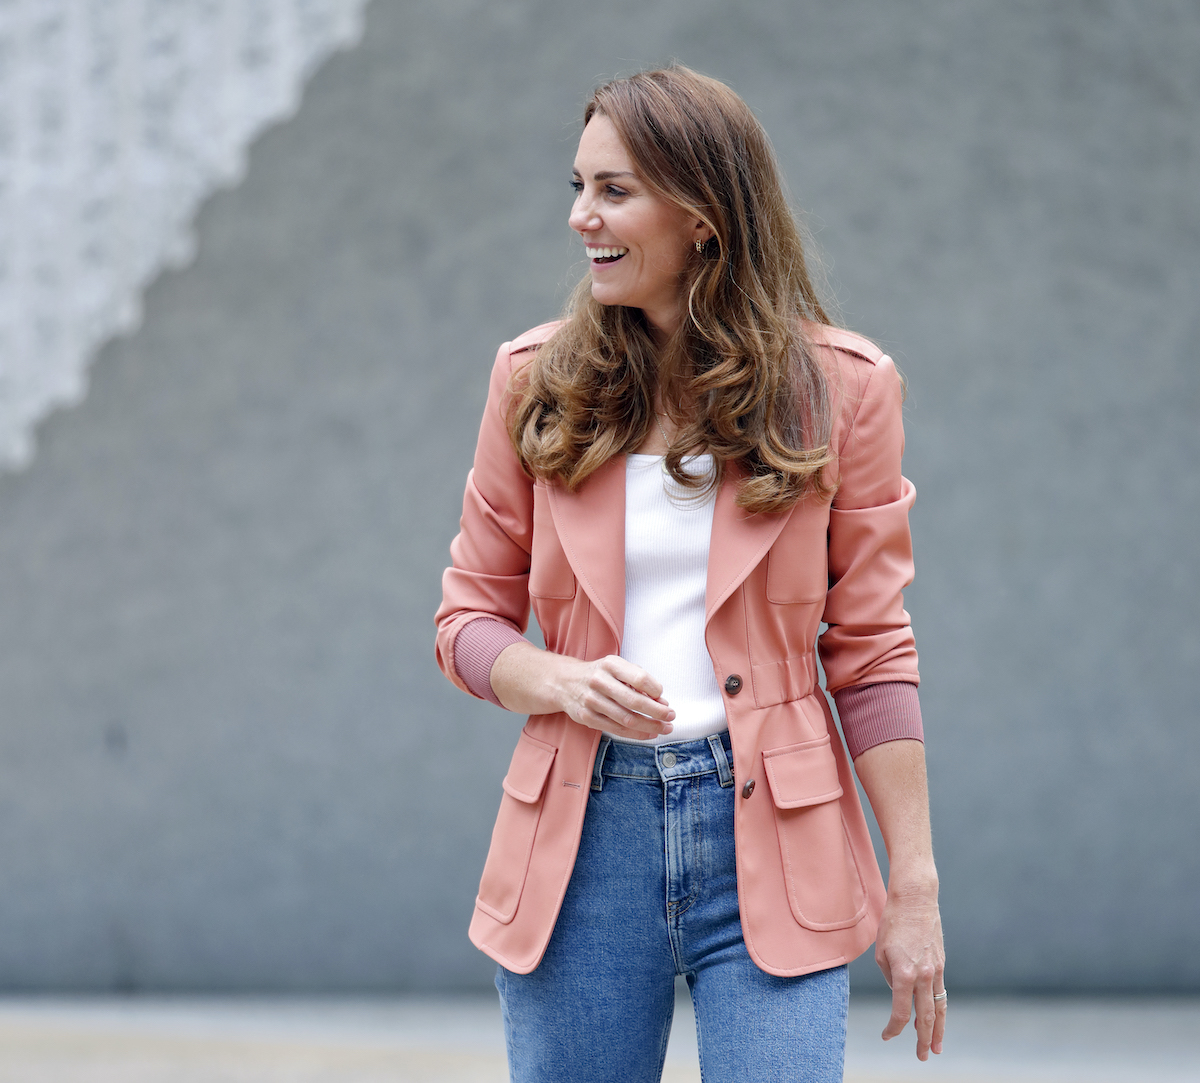 Kate Middleton laughing, turned to the right, wearing a pink blazer, white shirt, and high waisted jeans